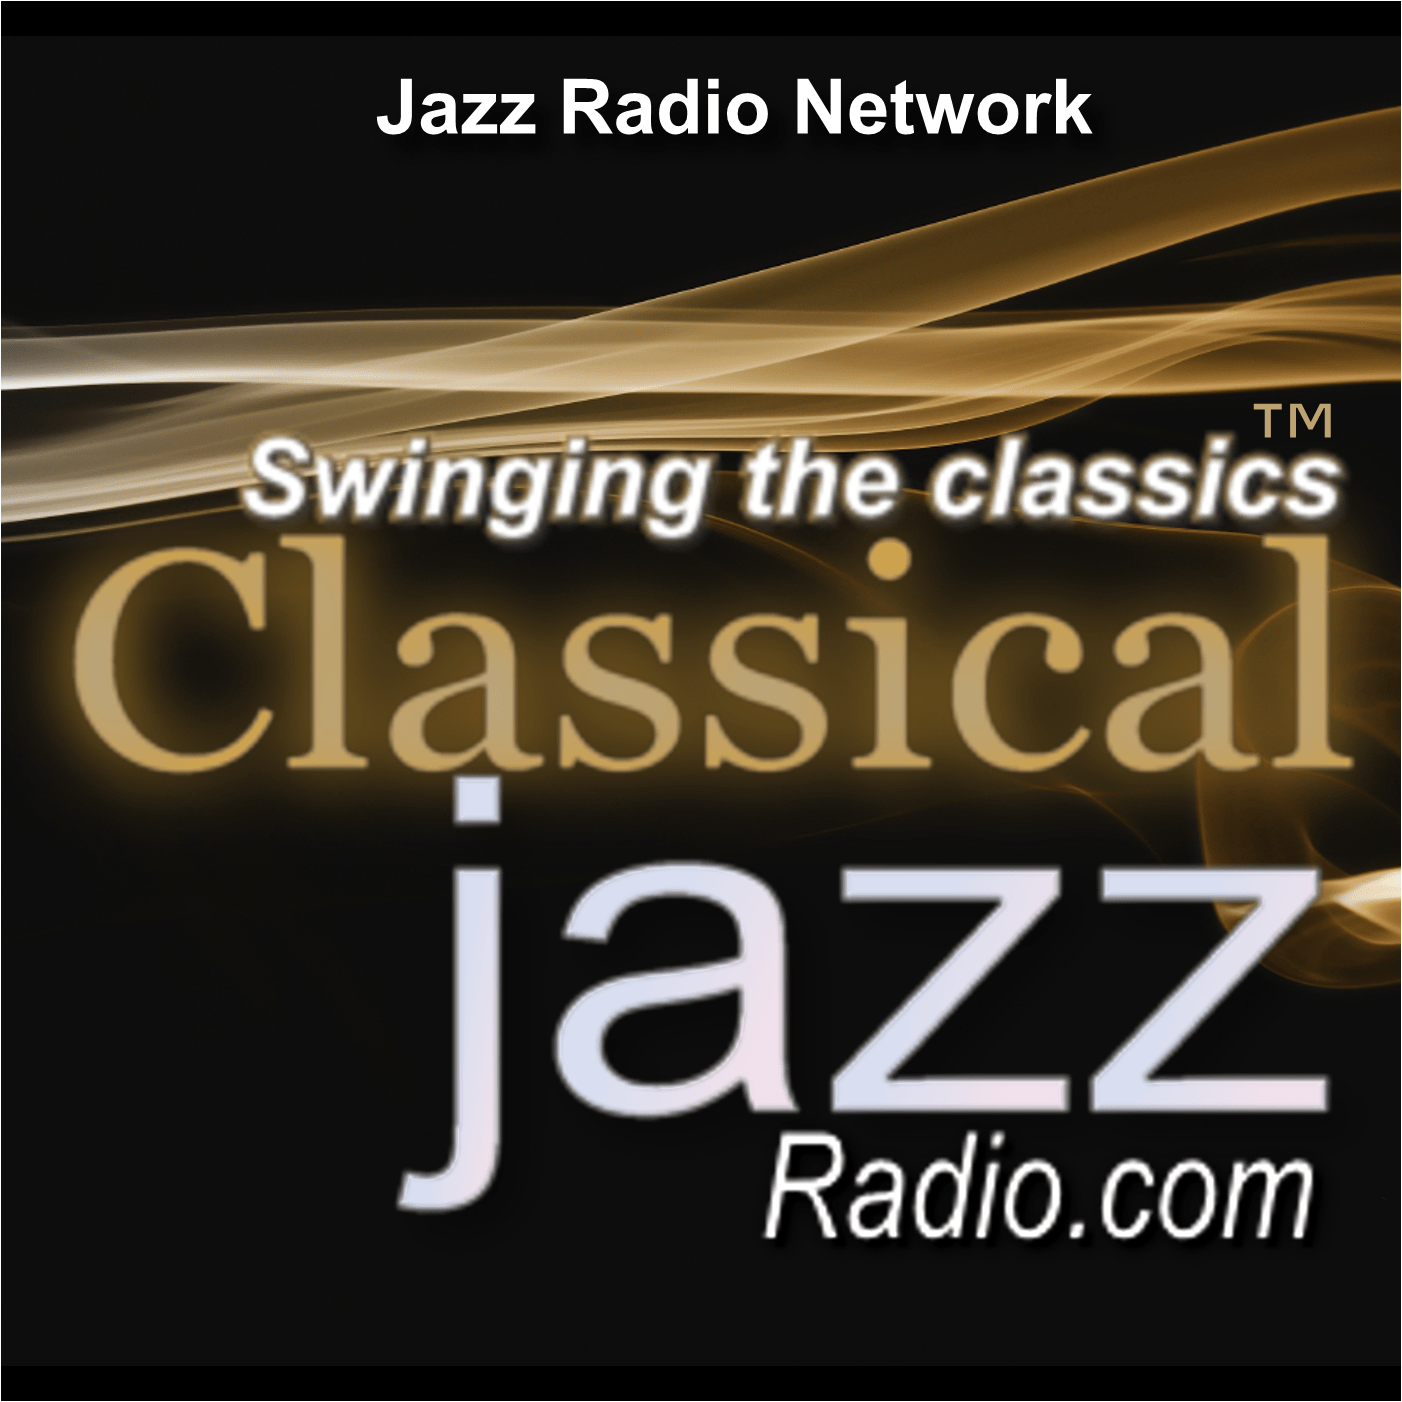 """a study of jazz and classical music The idea of jazz as """"america's classical music"""" has become a  the jazz  preservation act,"""" journal of american studies, 24, 1 (february 2011)."""